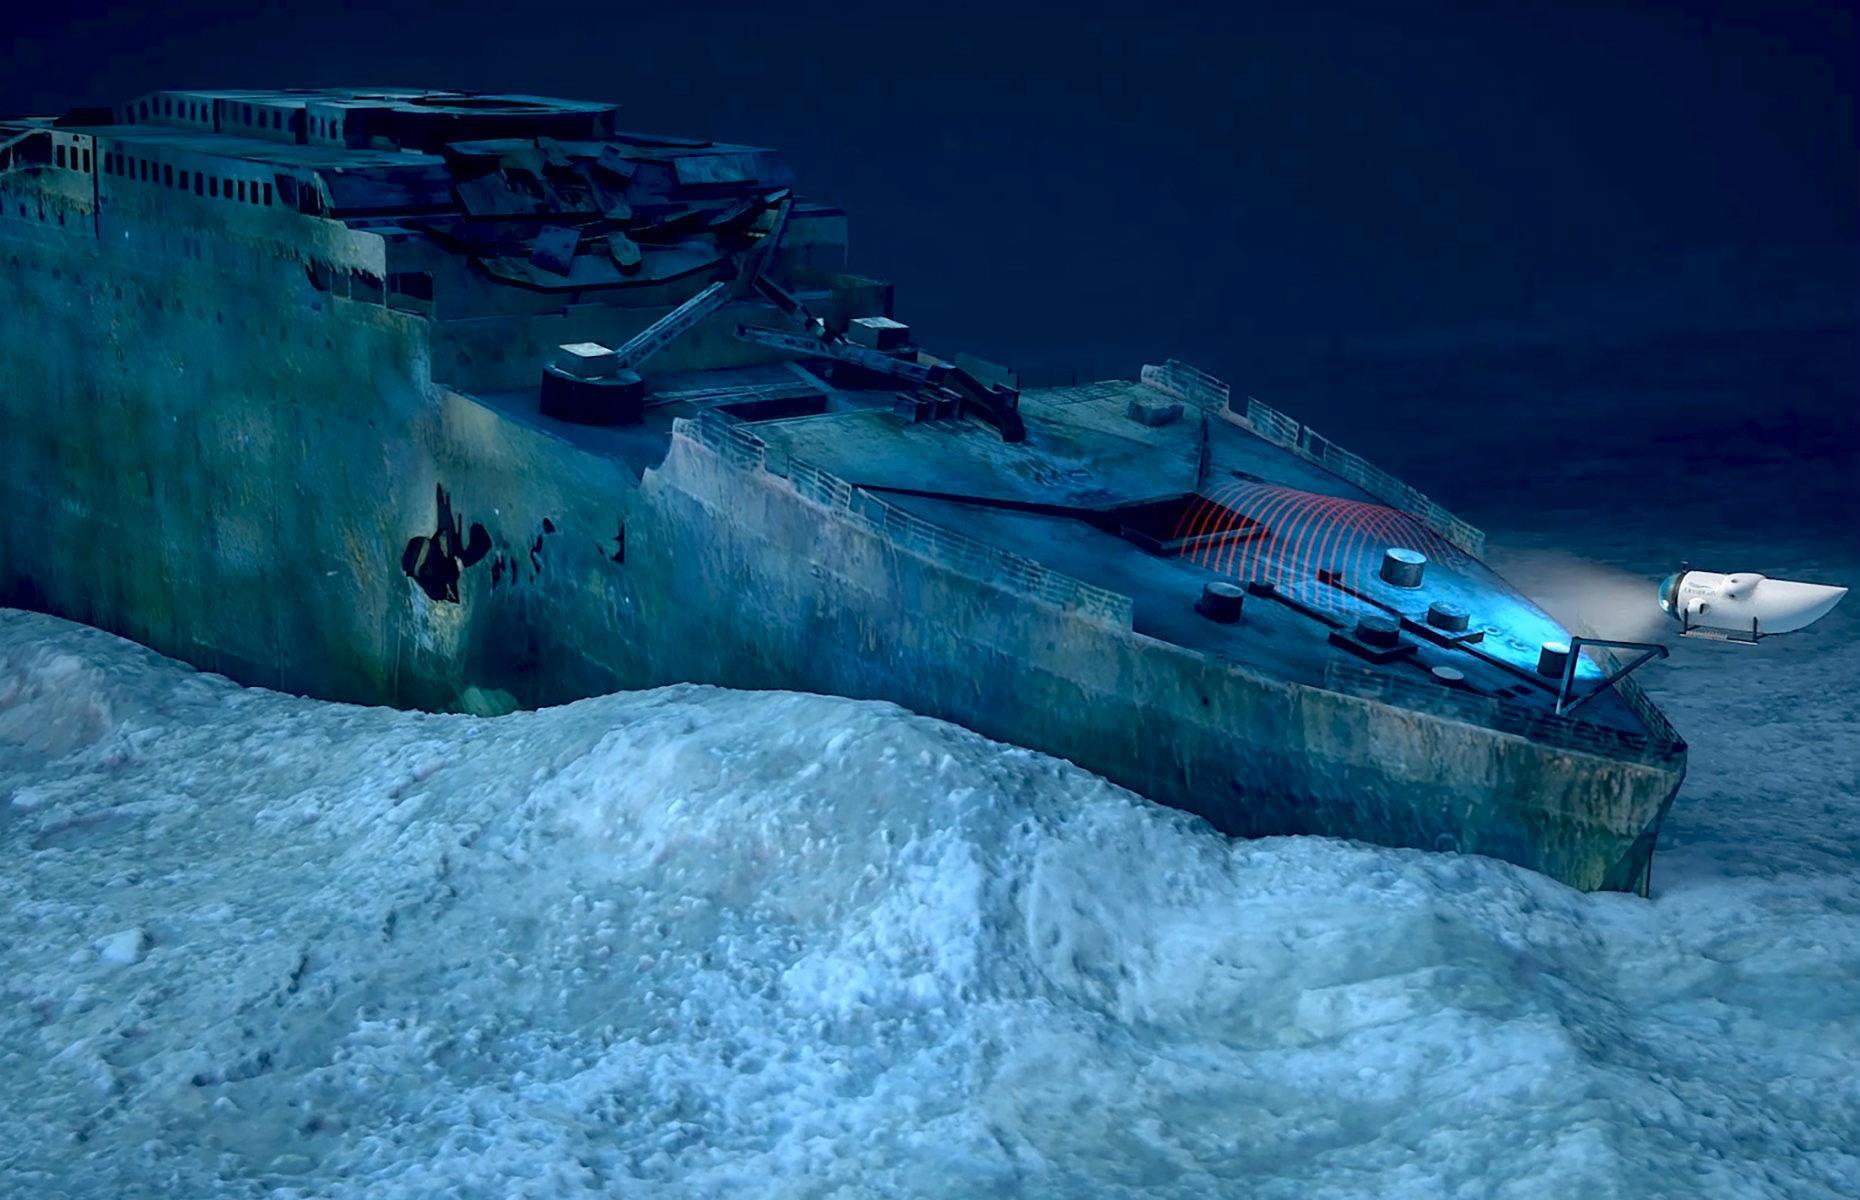 Slide 21 of 31: The most famous shipwreck of all time, the RMS Titanic has rested two miles below the Atlantic since its fateful maiden voyage in 1912. Launching in 2021, experience company OceanGate will be taking a limited number of guests and crew on a live scientific expedition to capture the first-ever 4K images of the Titanic. In August 2019, divers explored the wreck for the first time in 15 years and discovered that it's deteriorating from bacteria and salt corrosion. The starboard side of the officer's quarters has disappeared and the divers predict it won't be long before the entire ship is lost. Uncover the secrets of the Titanic here.